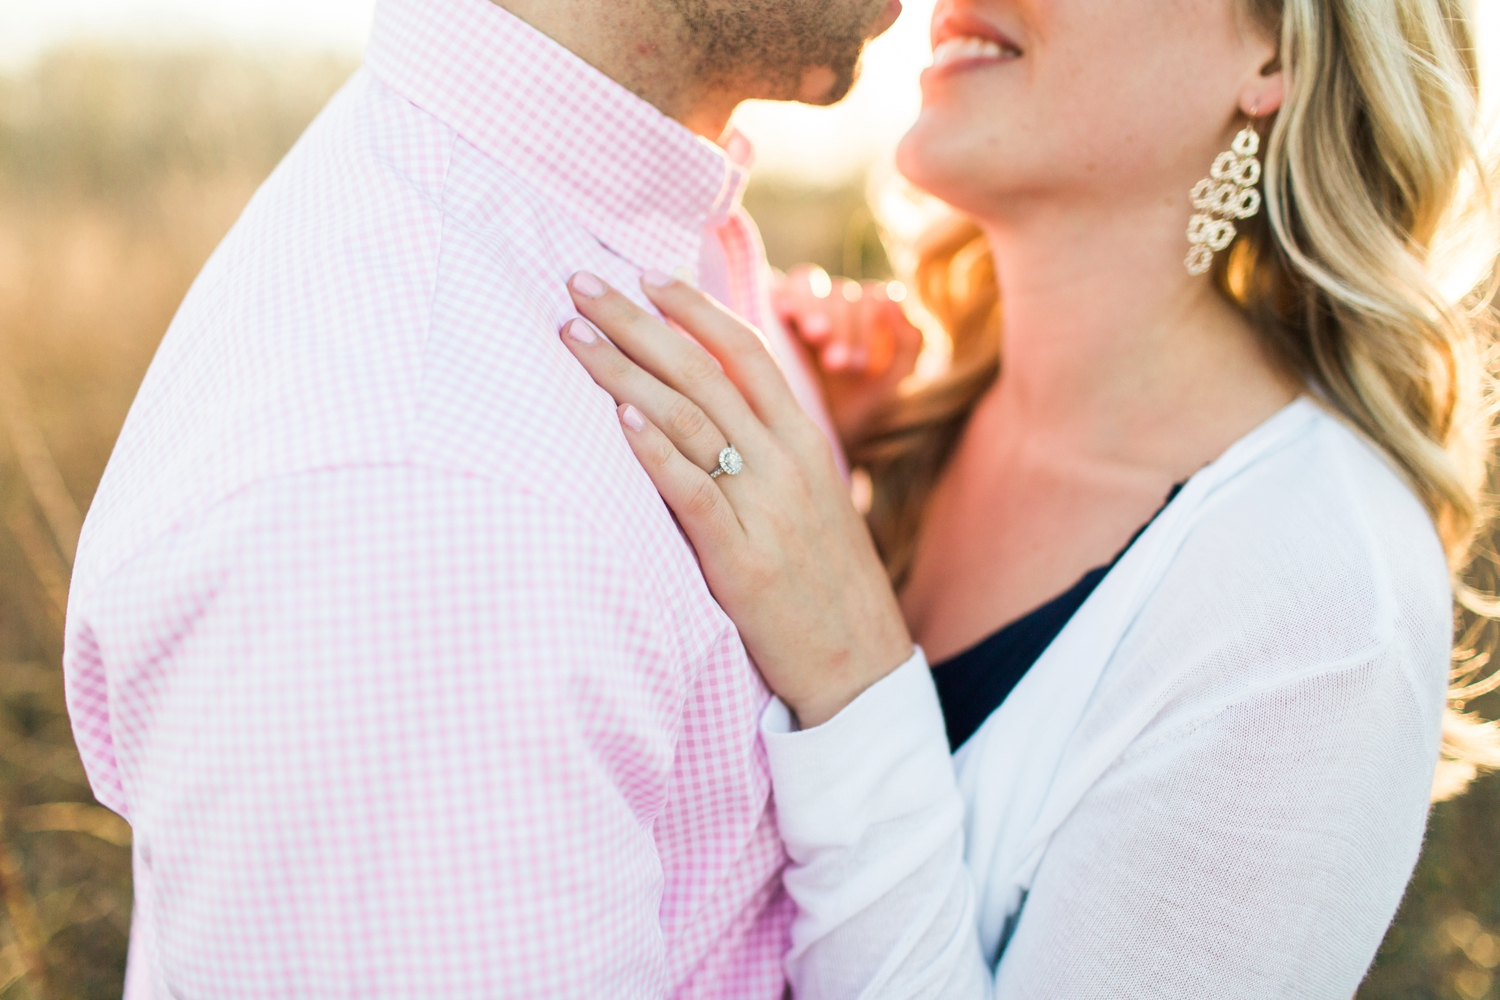 indianapolis_wedding_photographer_golden_hour_engagement_chloe_luka_photography_6132.jpg